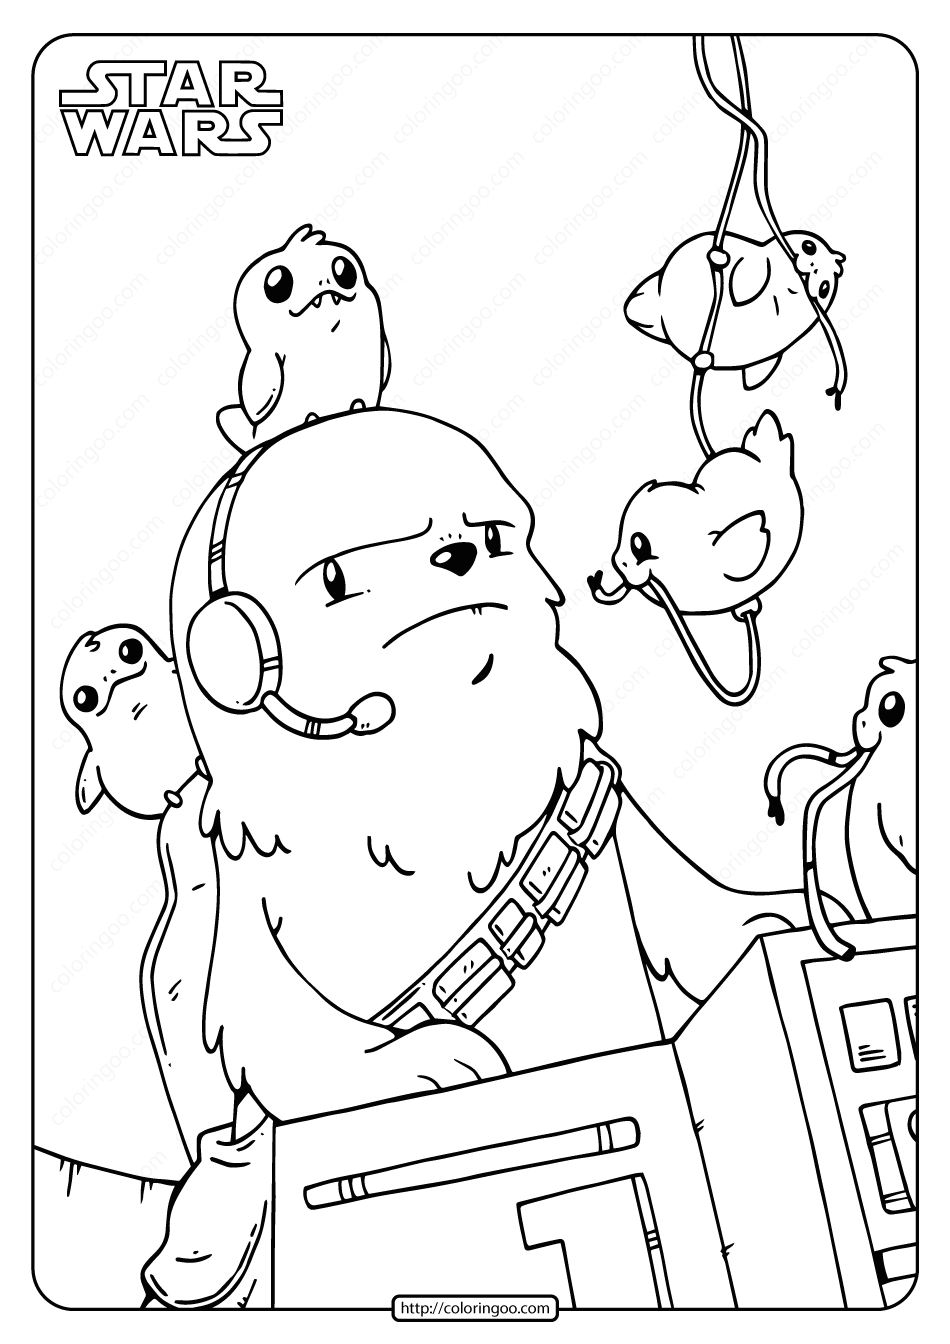 Star Wars Chewie And Porgs Coloring Pages In 2020 Star Wars Coloring Sheet Star Wars Cartoon Descendants Coloring Pages